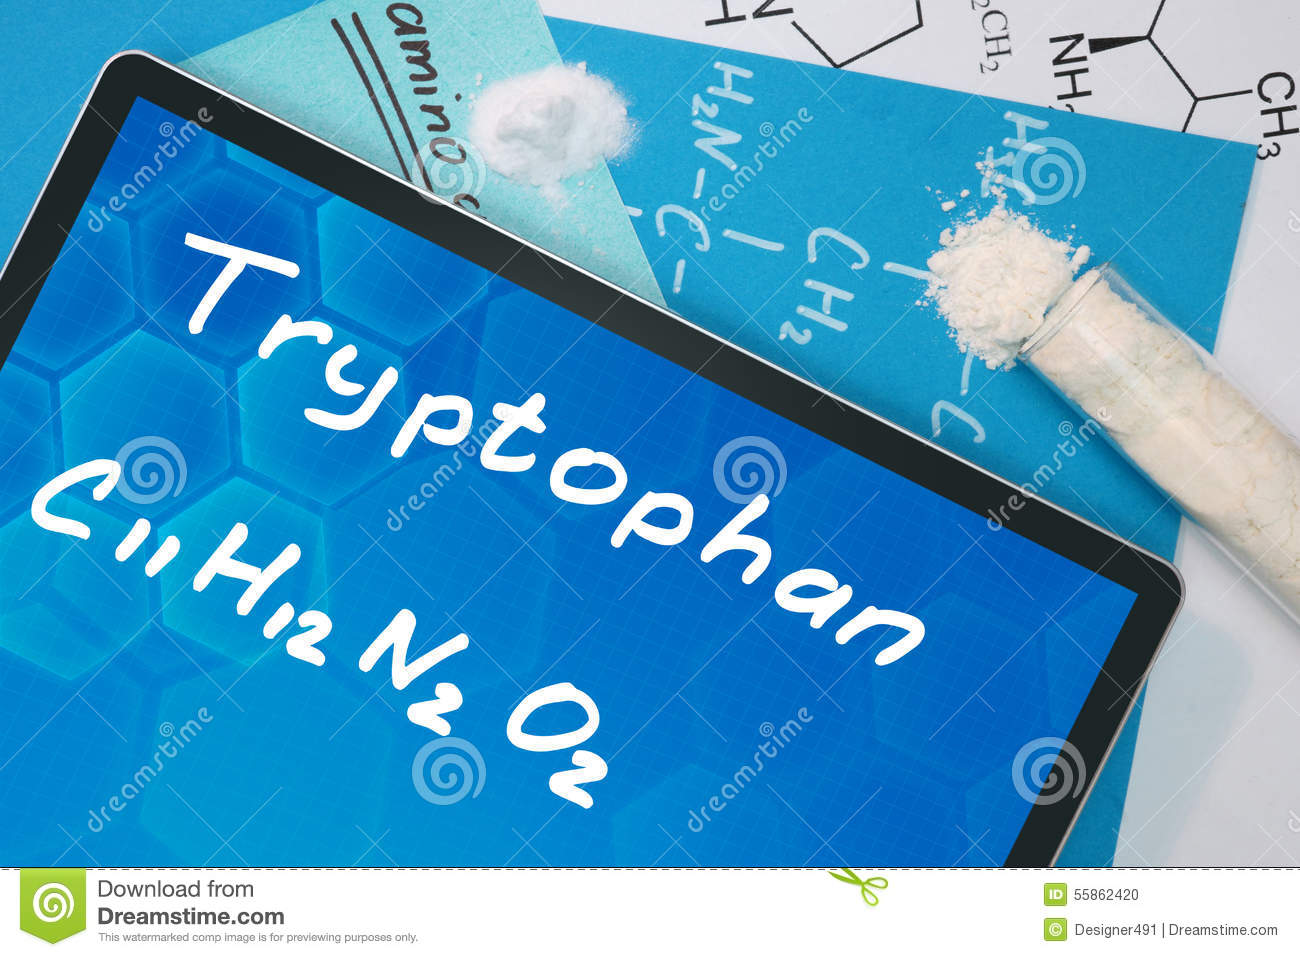 76dcd11659d0 Tablette Avec La Formule Chimique Du Tryptophane Photo stock - Image ...